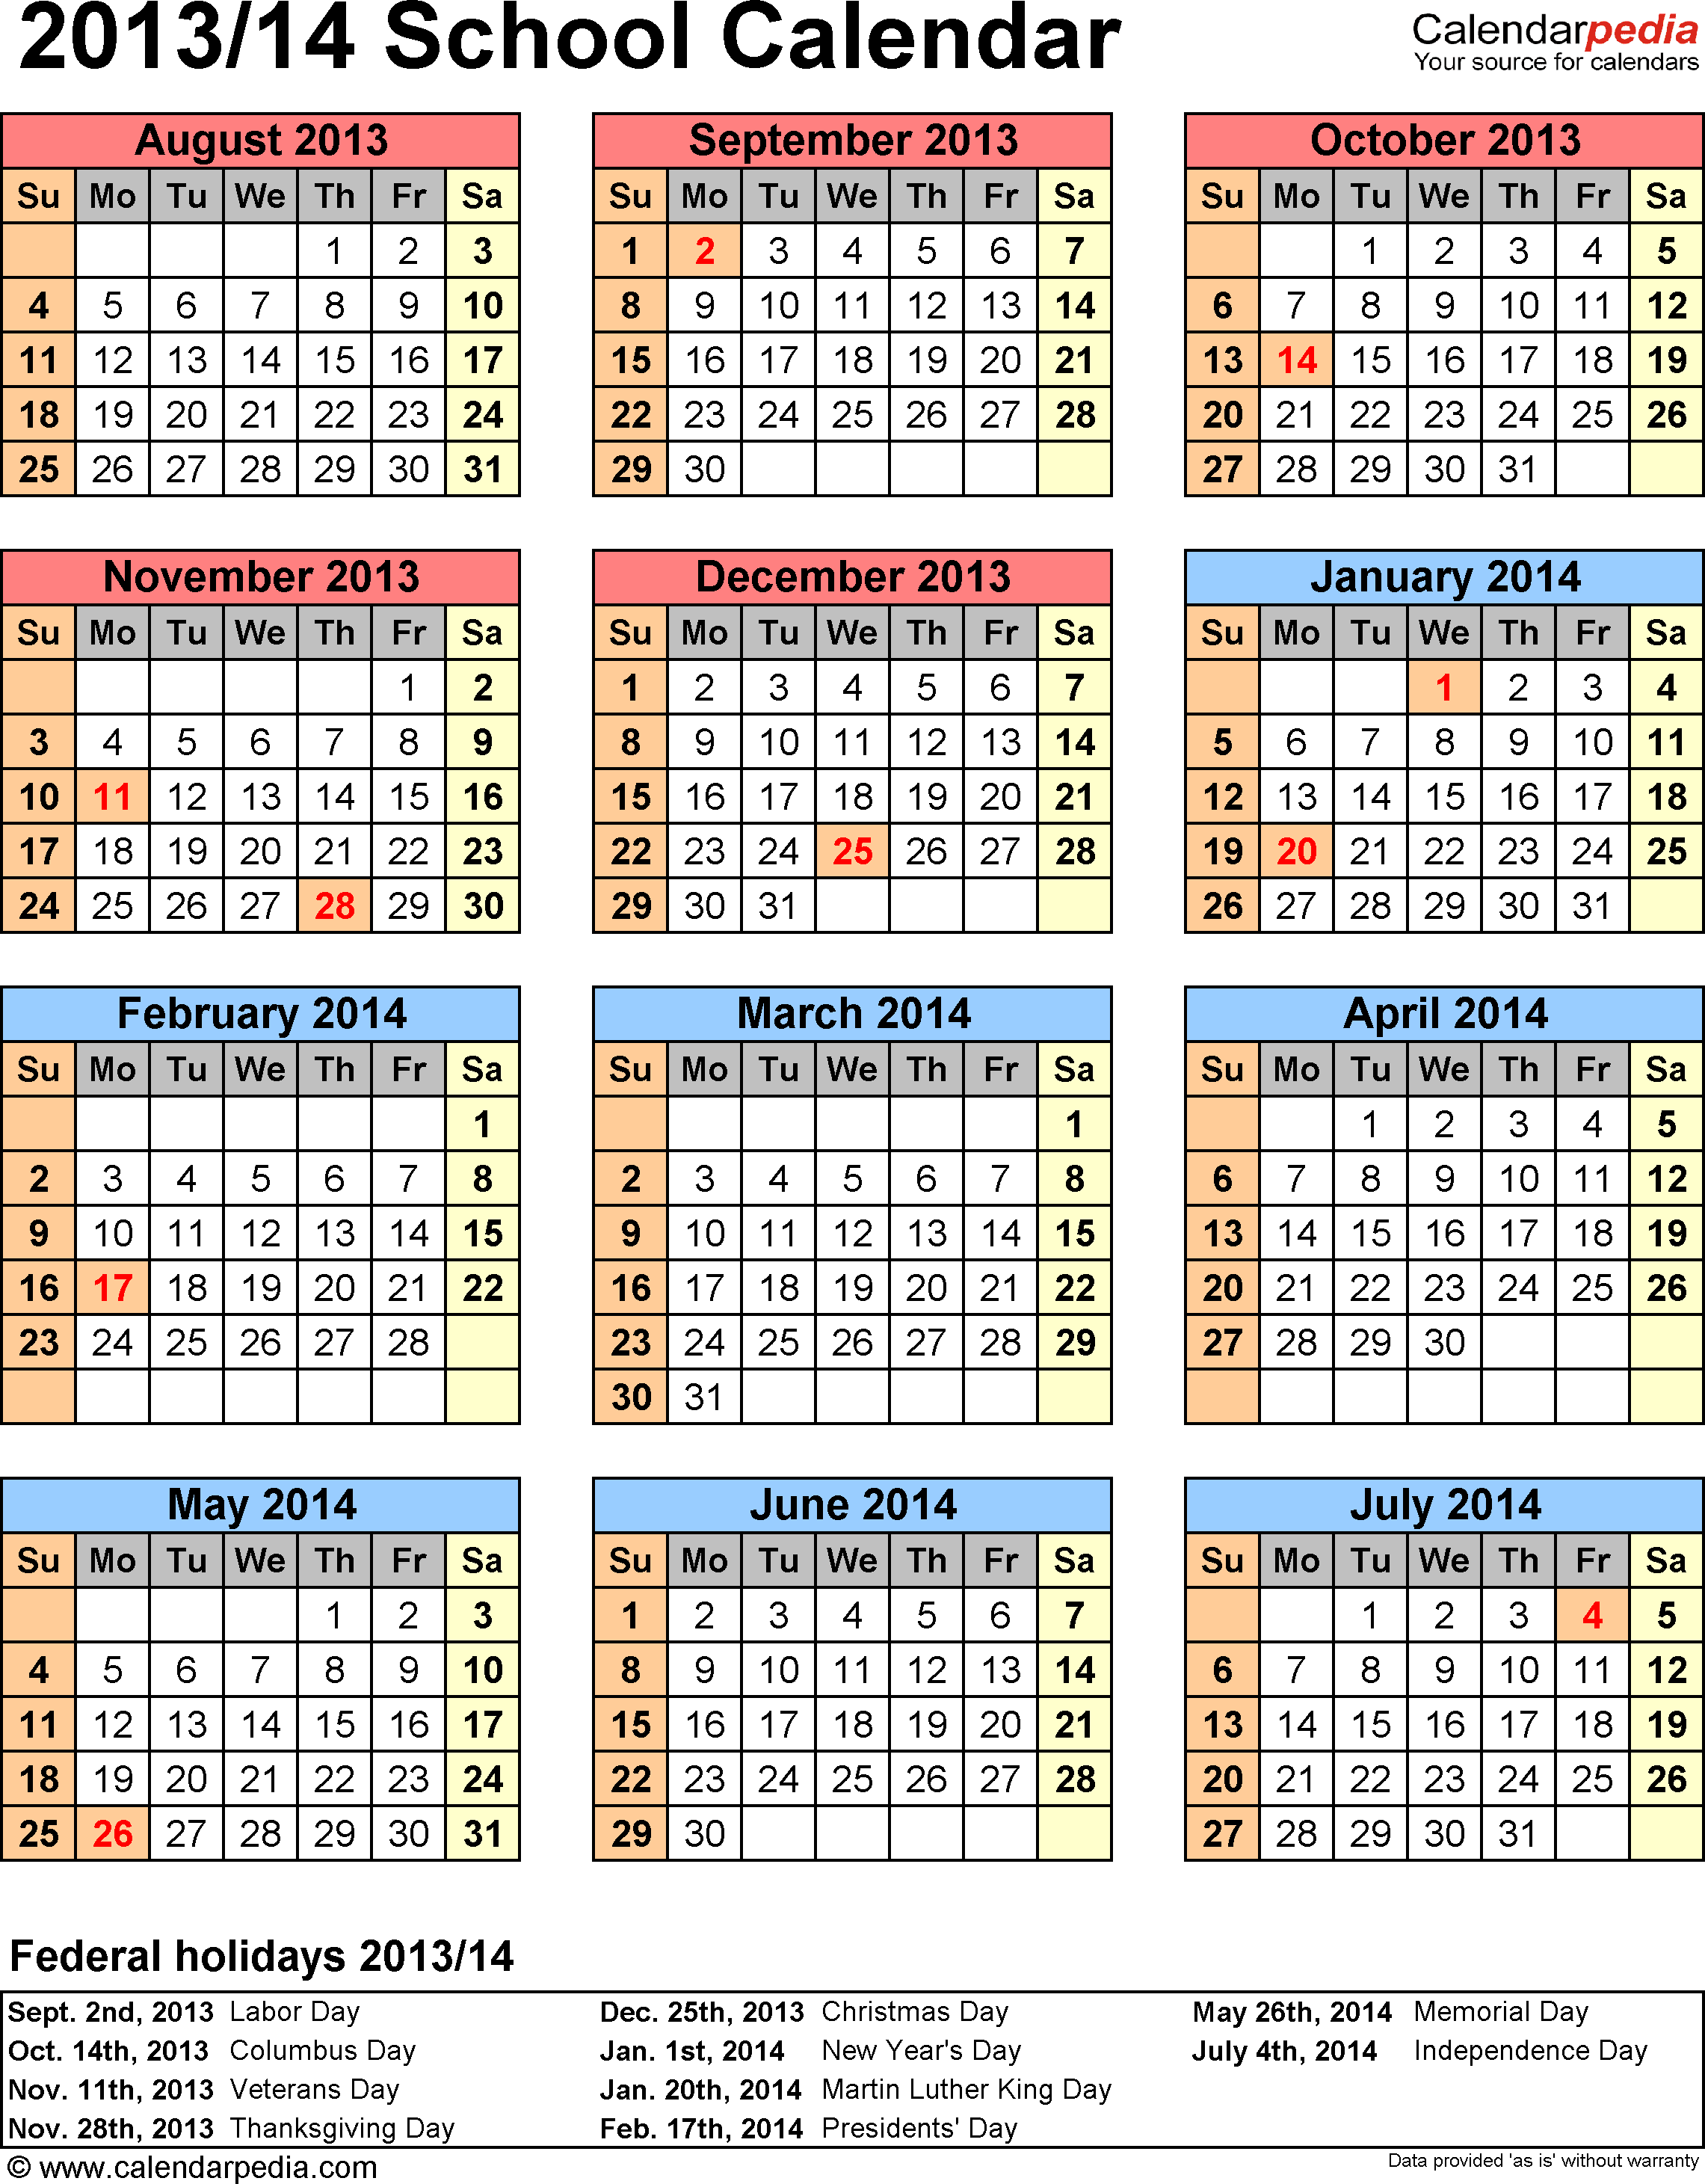 Download Template 6: School calendar 2013/14 for Microsoft Excel (.xlsx file), portrait, 1 page, year at a glance